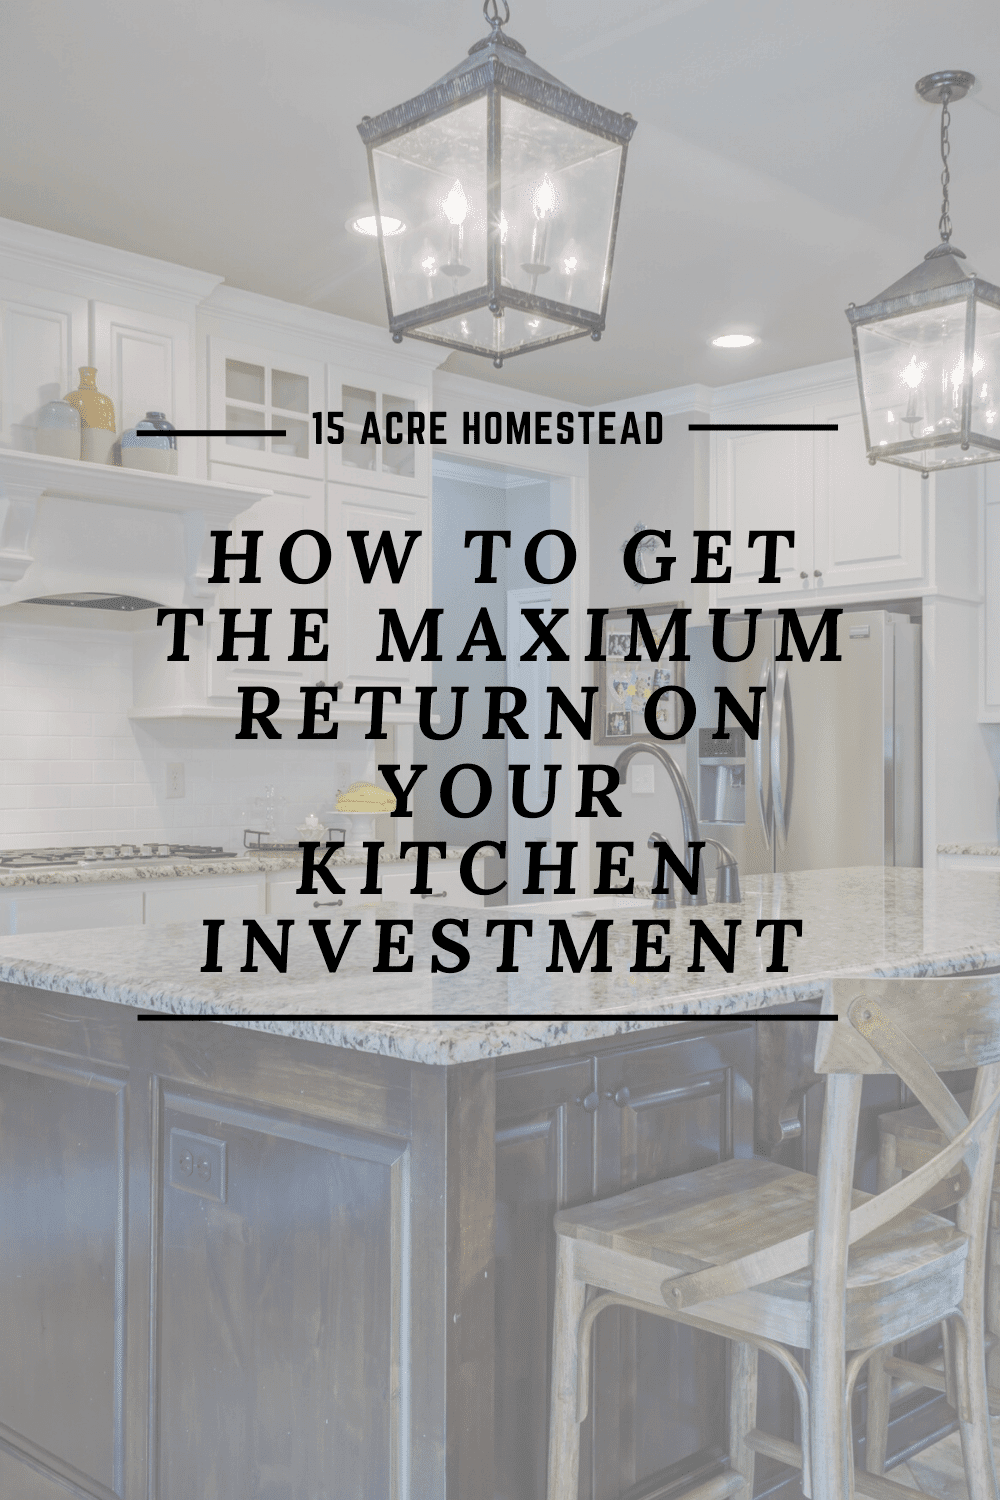 Here are some great tips to keep in mind before doing a kitchen project for your home.